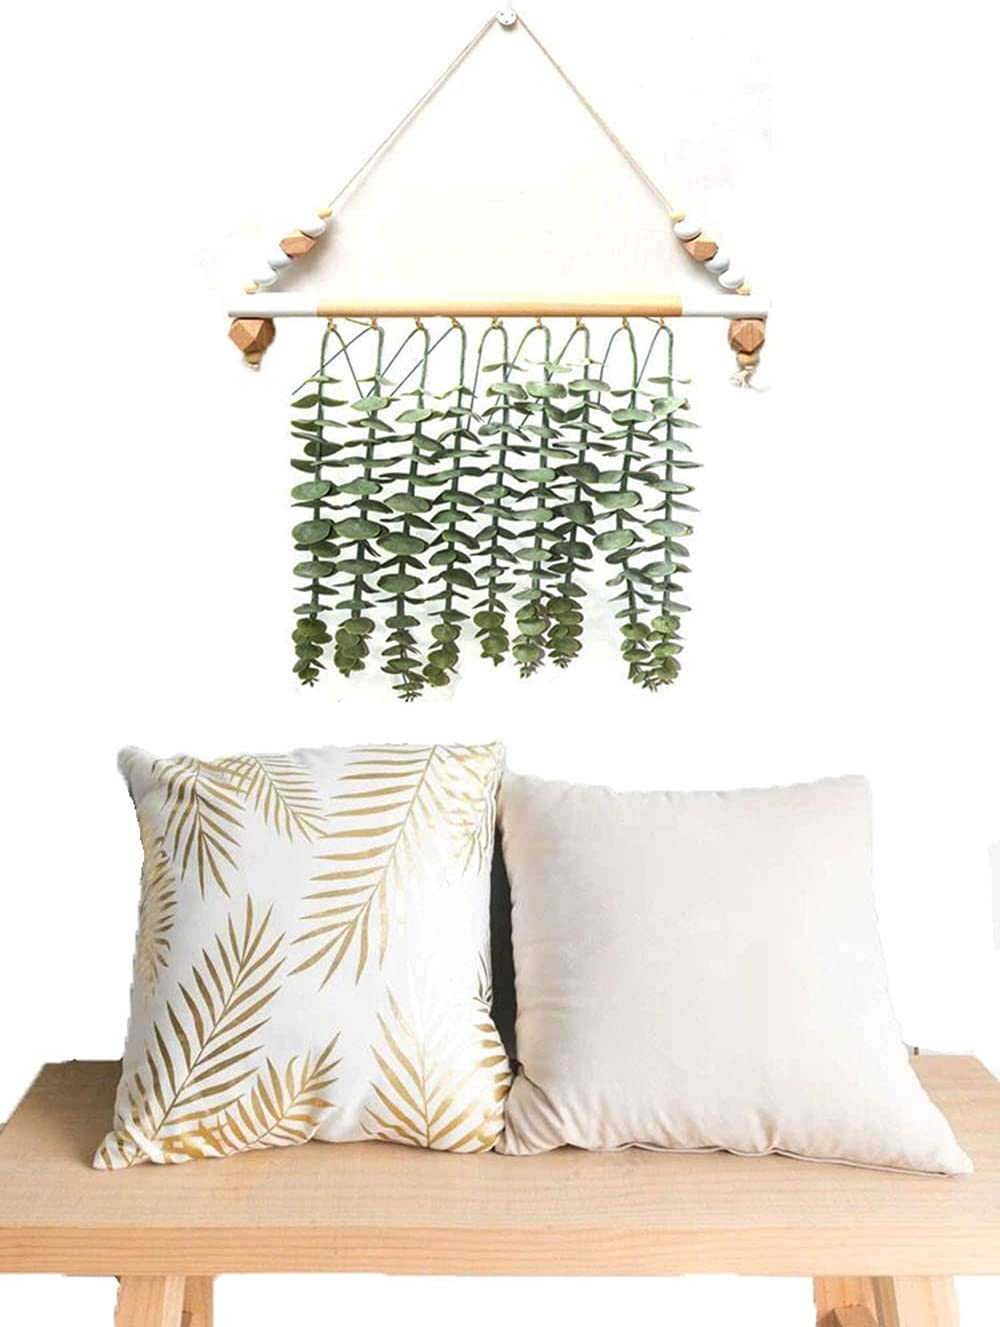 Eucalyptus Wall Hanging Artificial Eucalyptus Vines Branches and Greenery Decor for Boho Apartment Bedroom Living Room Decoration